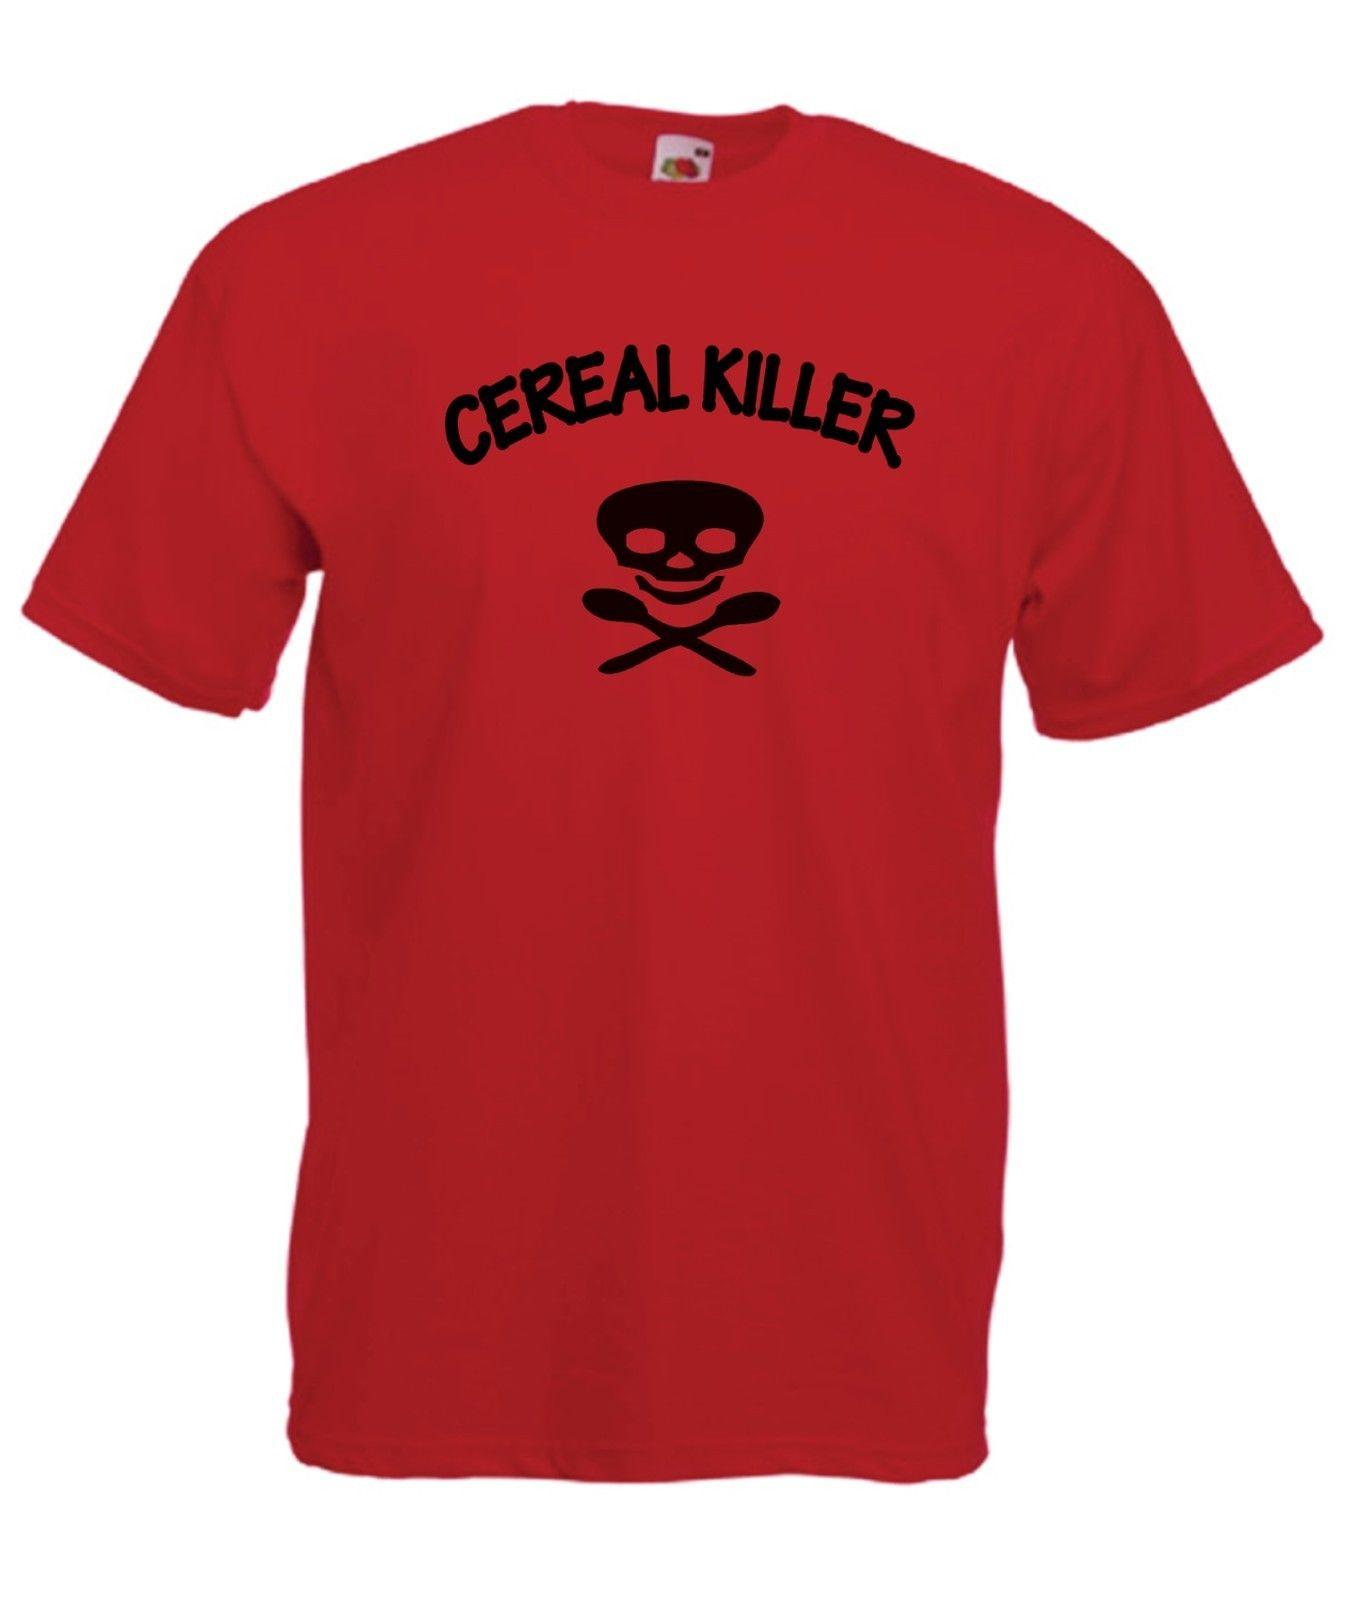 cde4eecec CEREAL KILLER Funny NEW Men Women T SHIRTS TOP Size 8 10 12 14 16 S M L Xl  XxL Classic Quality High T Shirt T Shirts And Shirts On T Shirts From  Mooncup, ...